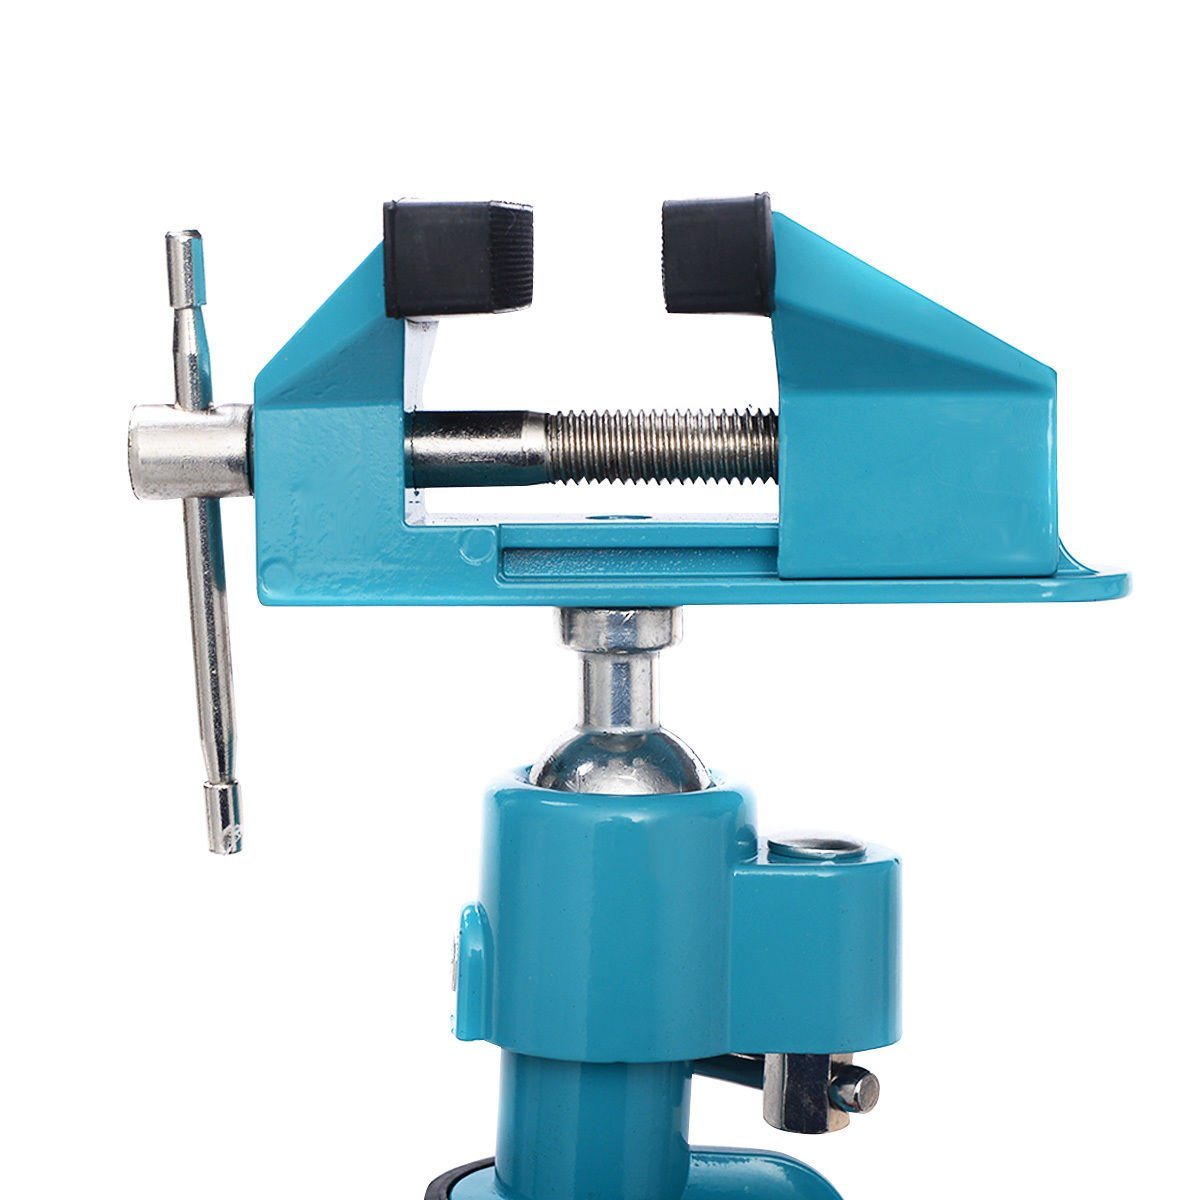 Goplus Bench Vise Swivel 3'' Tabletop Clamp Vice Tilts Rotate 360° Universal Work by Goplus (Image #4)